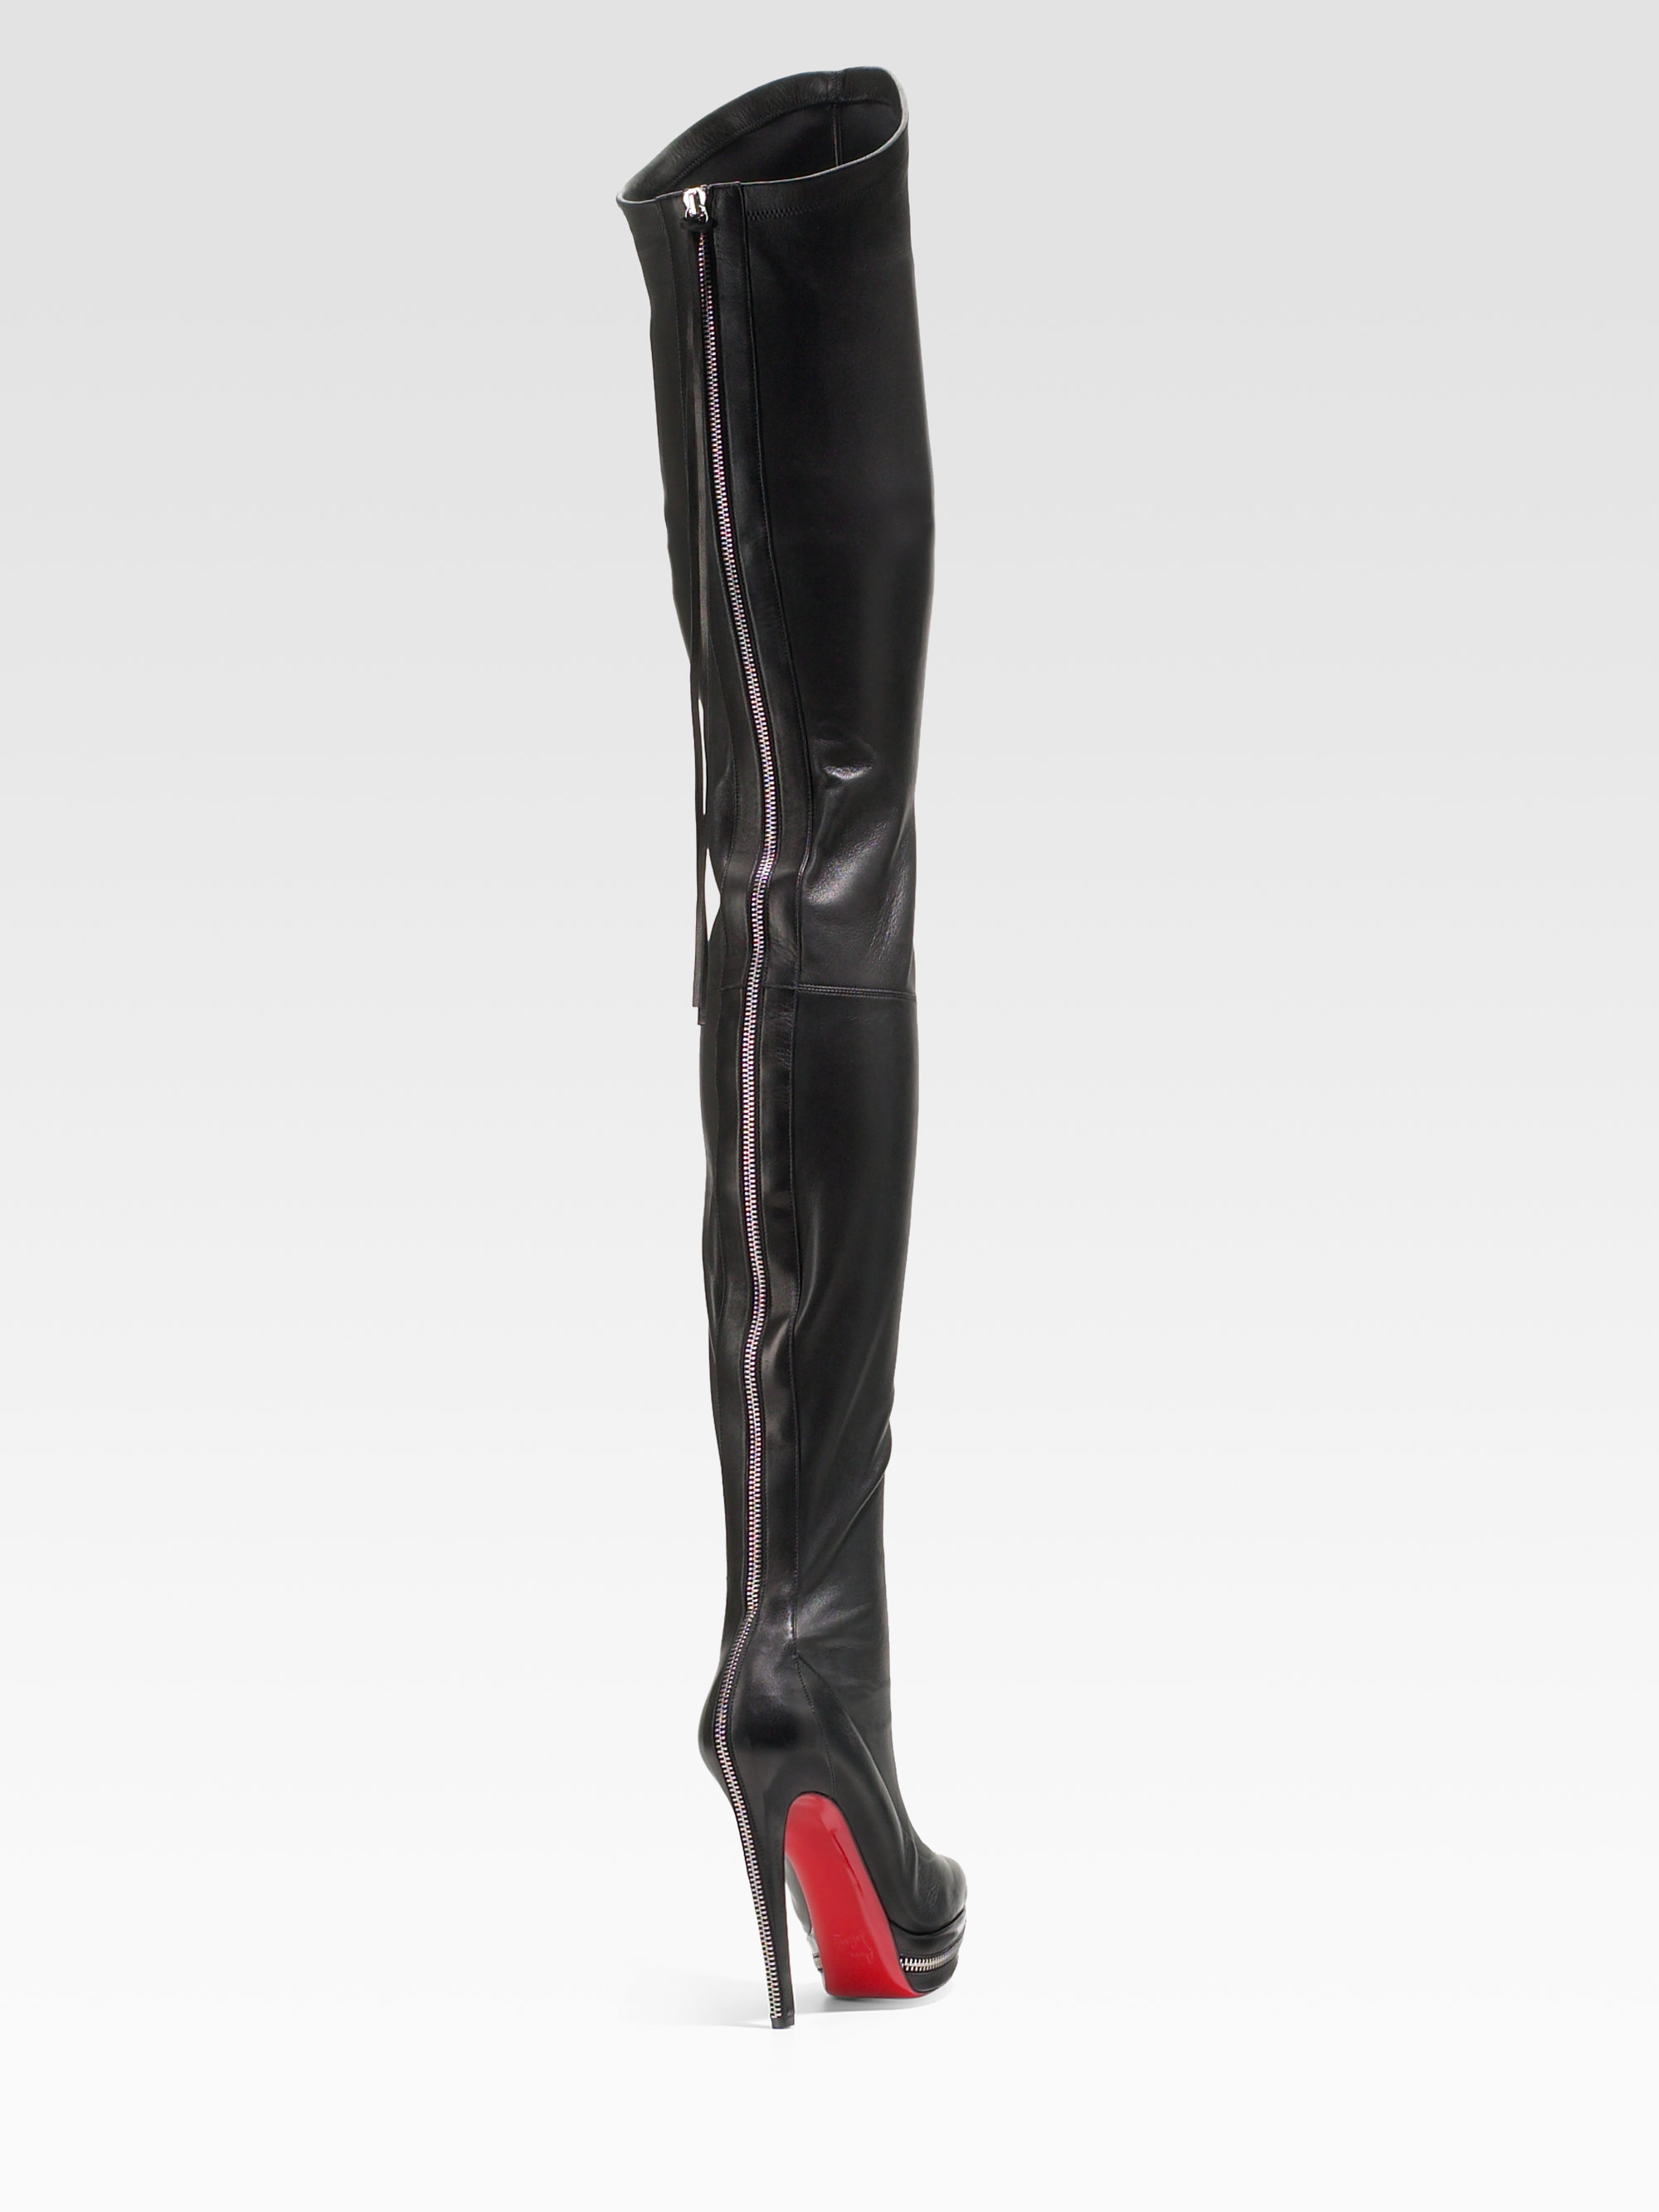 Christian louboutin Unique Thigh high Platform Boots in Black | Lyst